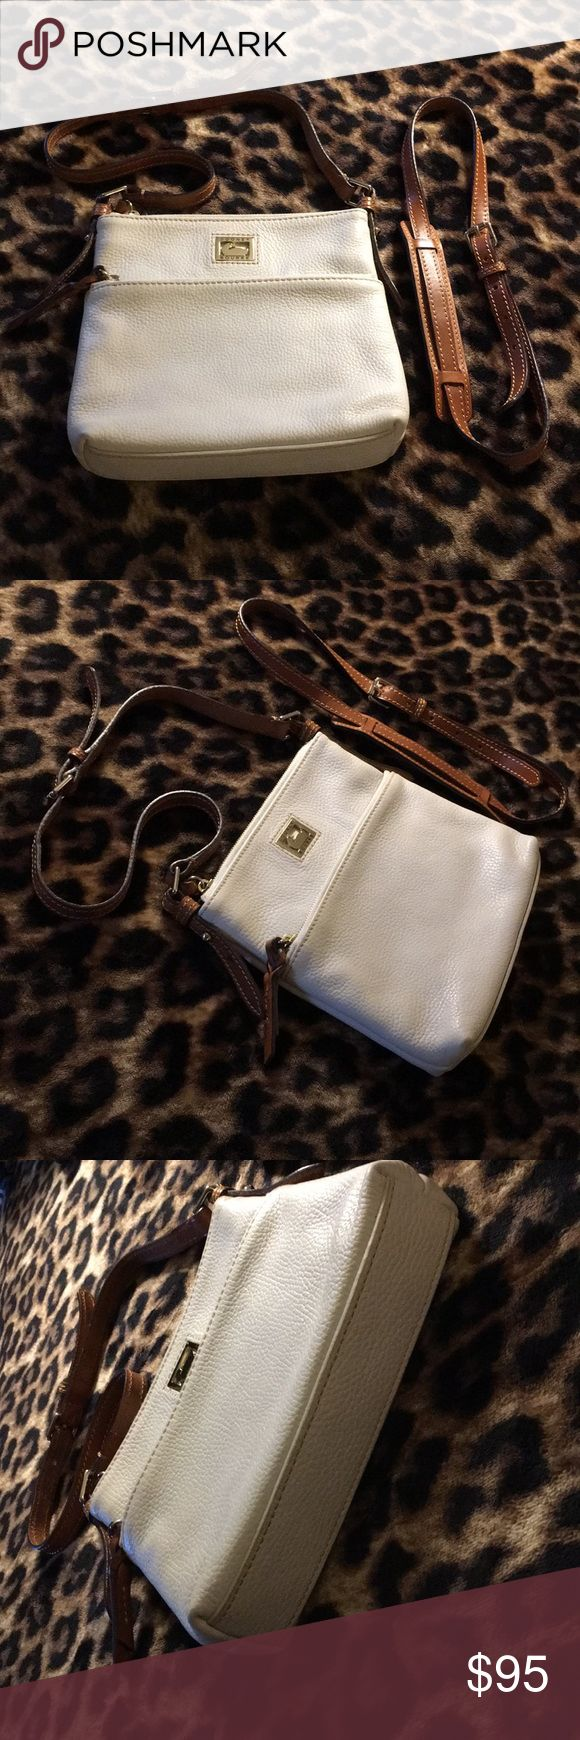 """EUC Dooney & Bourke Convertible shoulder/Crossbody This beautiful Dooney & Bourke Bag is in Excellent Condition! Only used a few times! Can wear as a shoulder bag or add additional strap and wear as a Crossbody Bag! Lots of storage for a small bag! One outside zipper pocket, one main pocket with a zipper pocket, two separate pockets & Key Holder!  Clean inside & out! Like new!  Smoke free home!  L 9"""" H 8.5"""" W 1.5"""" Dooney & Bourke Bags"""